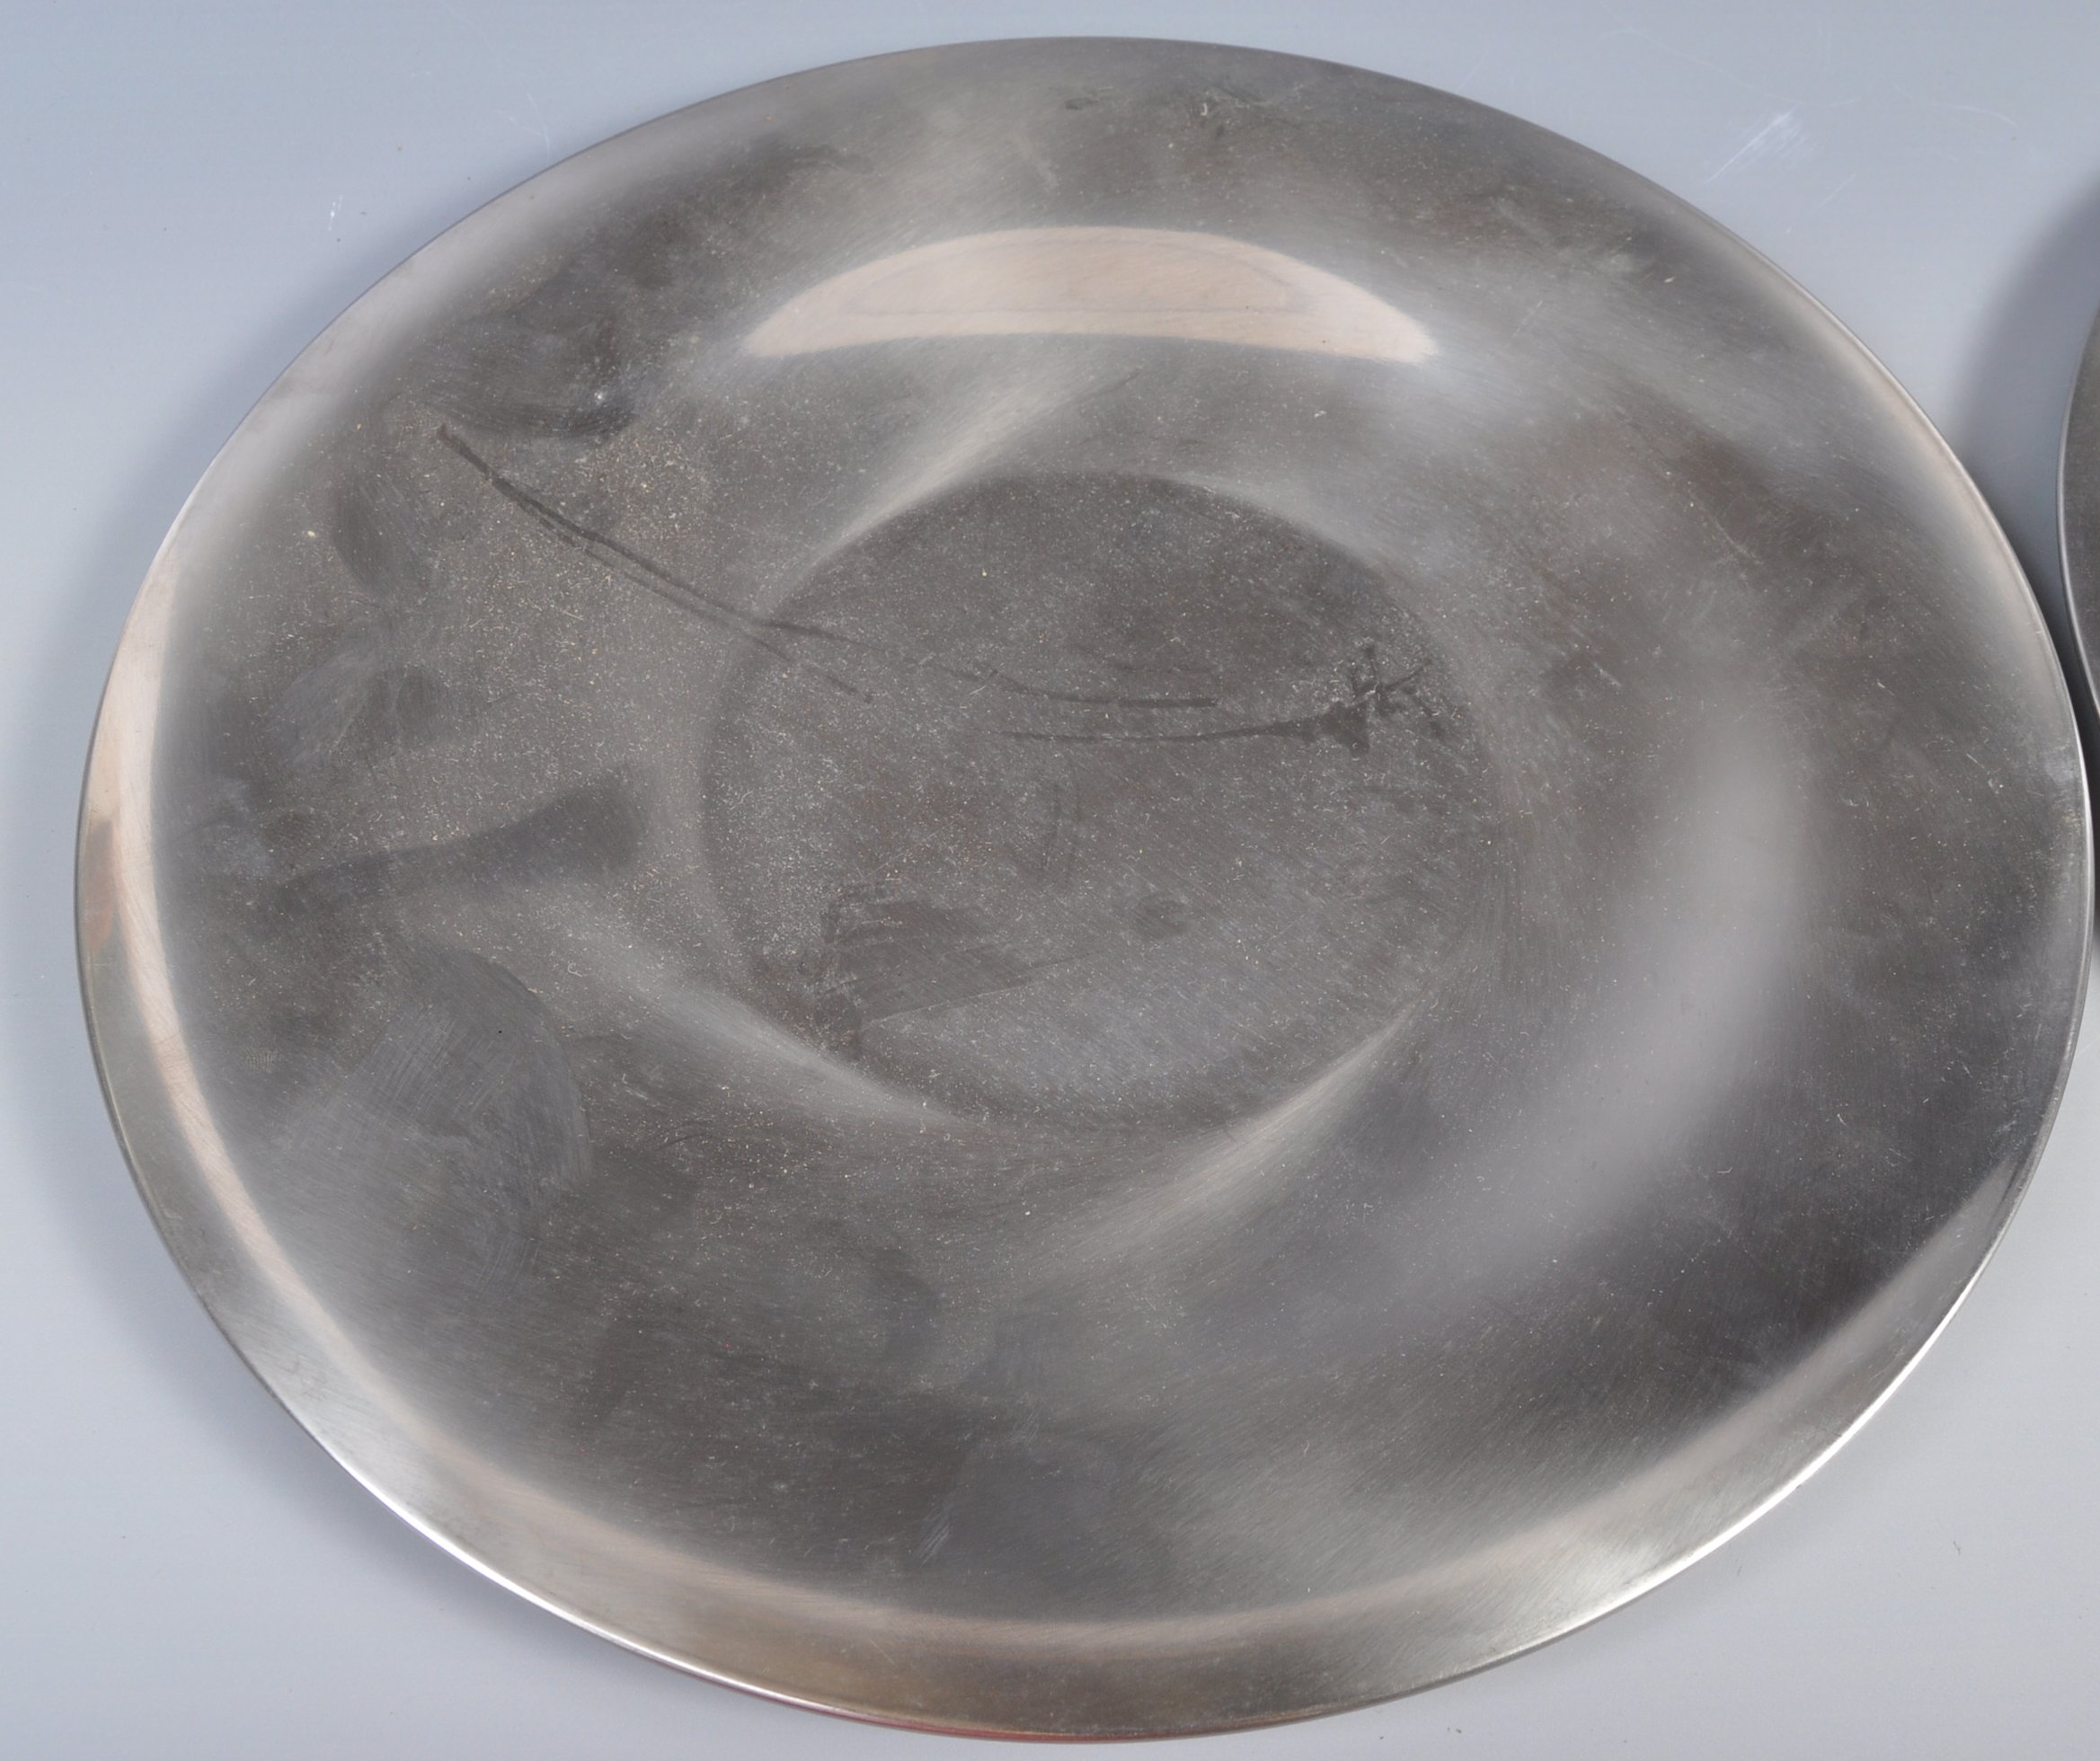 PAIR OF DANISH STAINLESS STEEL PLATES BY LONE SACHS FOR LUNDTOFTE - Image 2 of 8